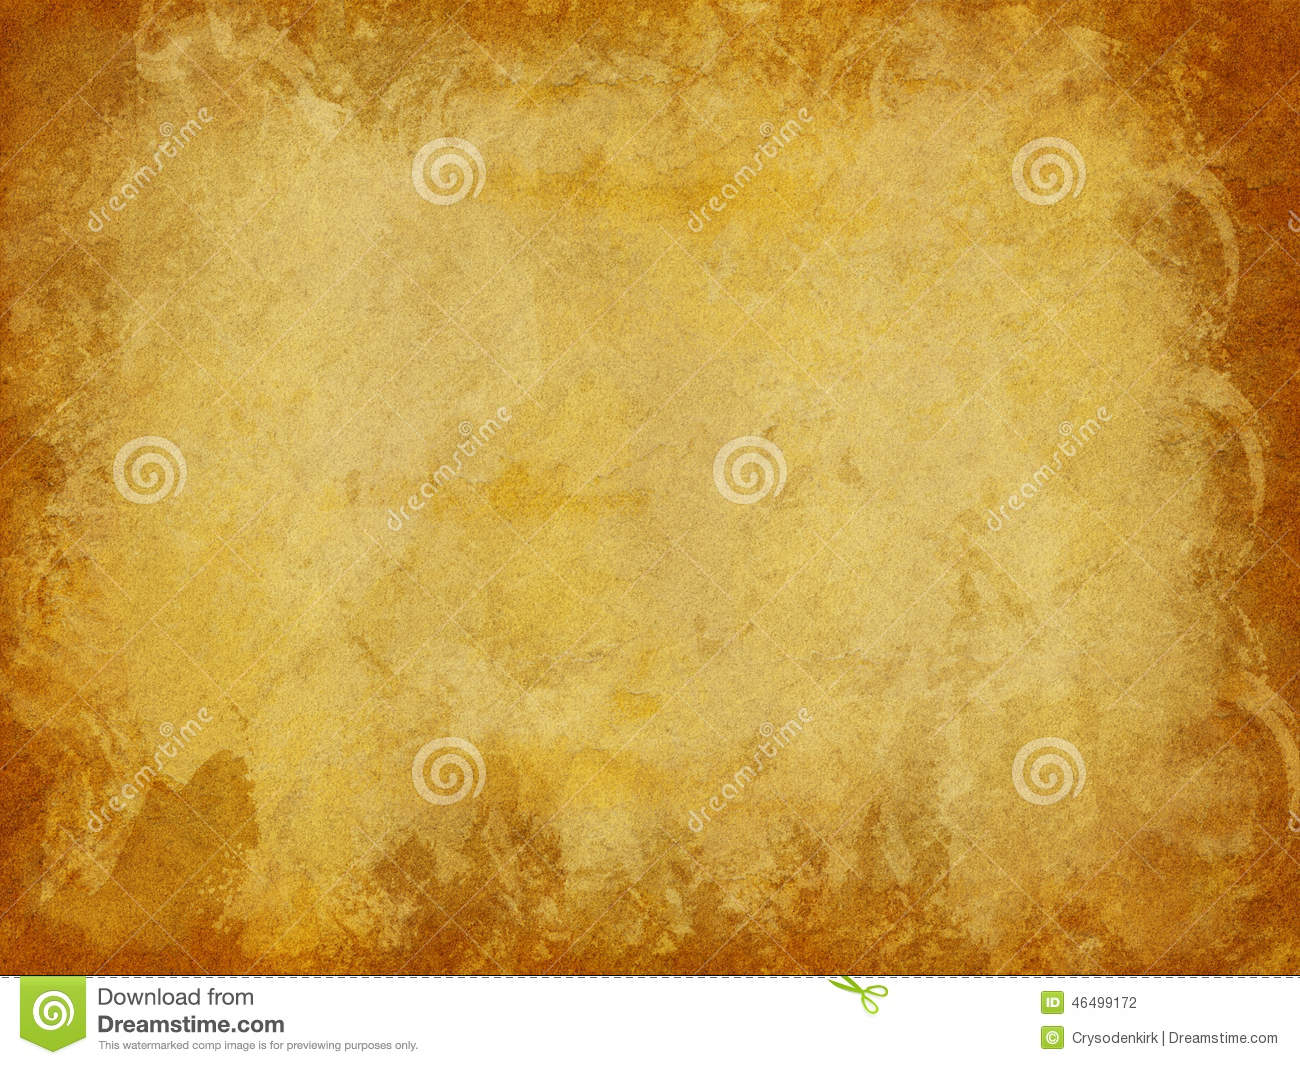 Brown and Gold Distressed Paper Texture Background with Dark Edges